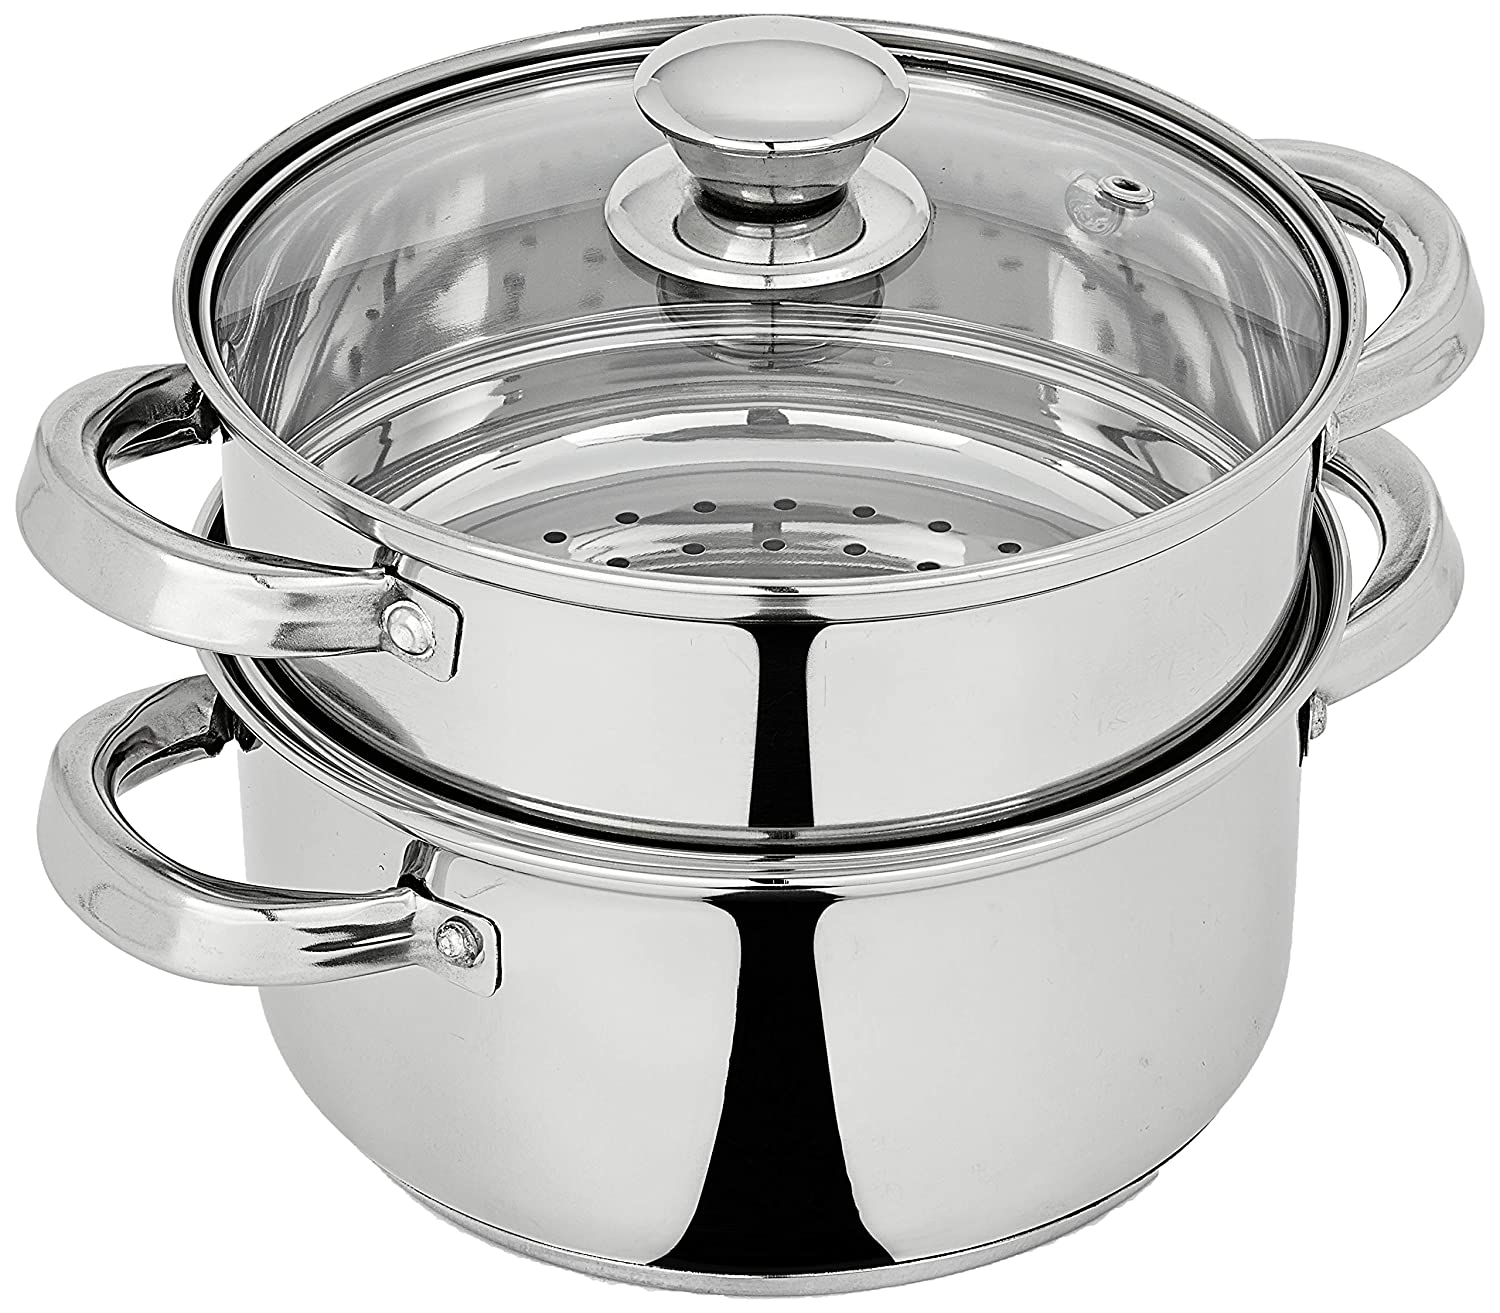 Amazon Brand - Solimo Stainless Steel Induction Bottom